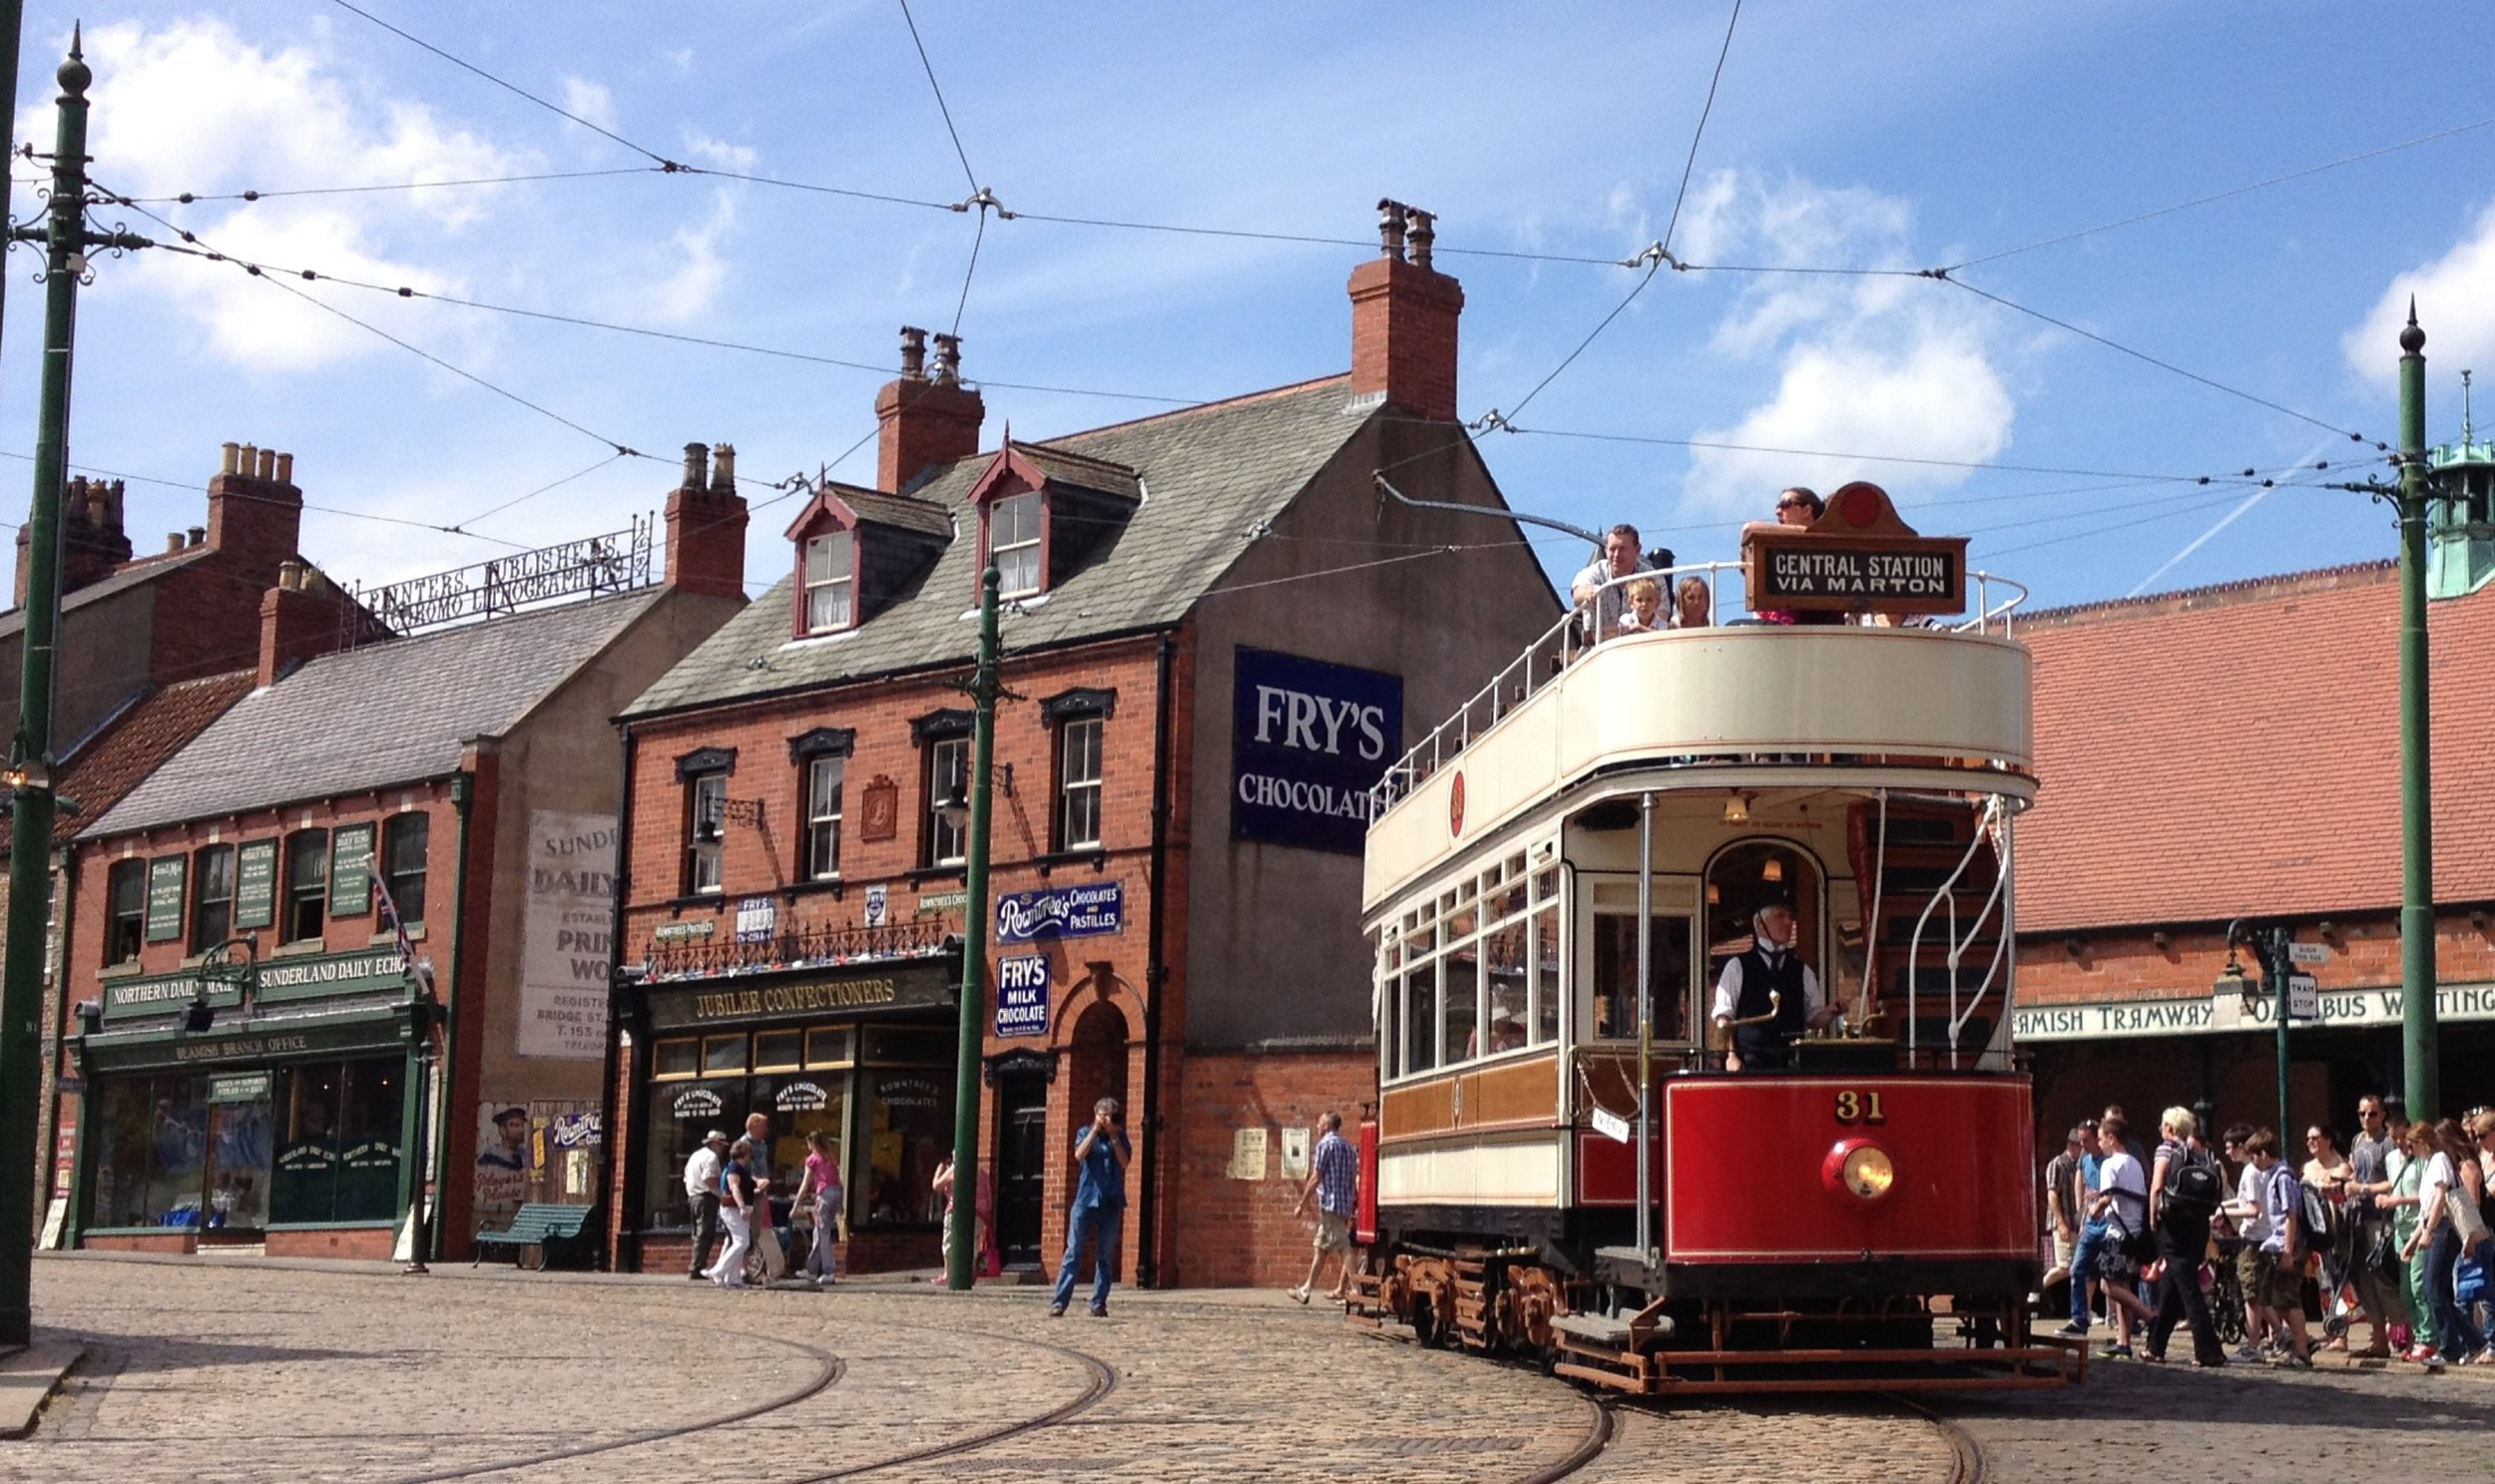 Tram-31-in-The-Town-at-Beamish-3.jpg